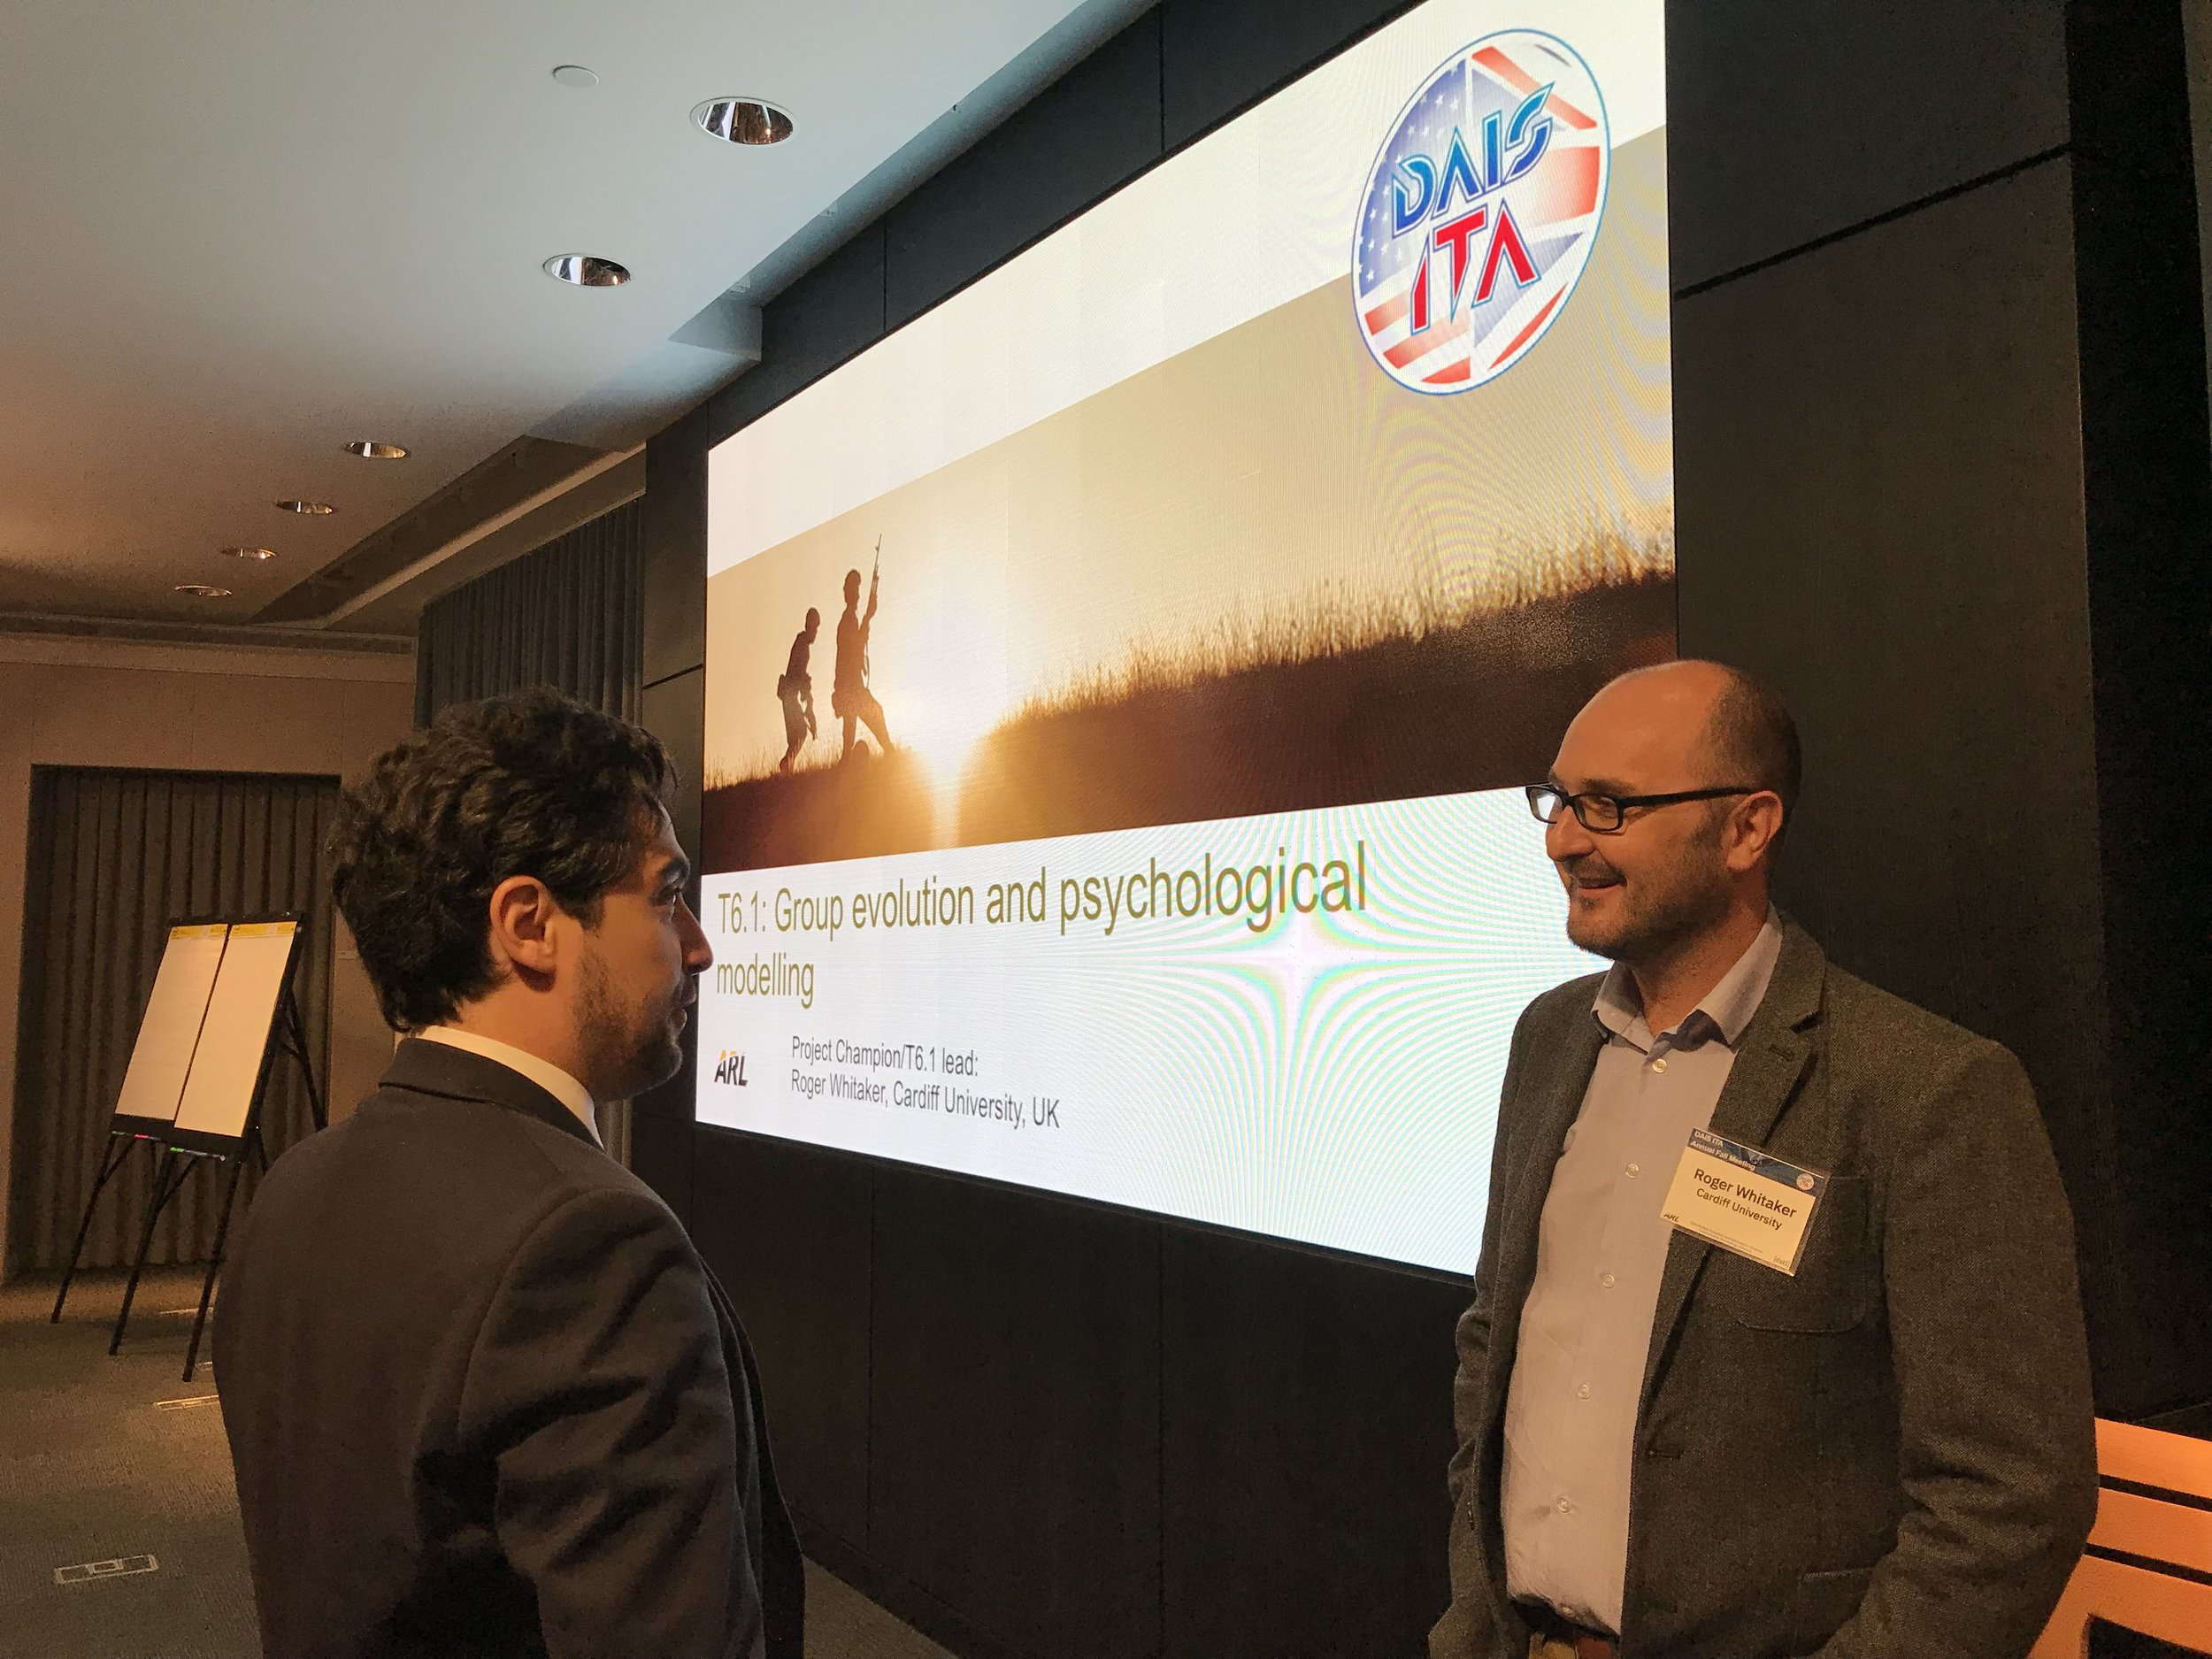 Federico Cerutti and Roger Whitaker at the presentation session